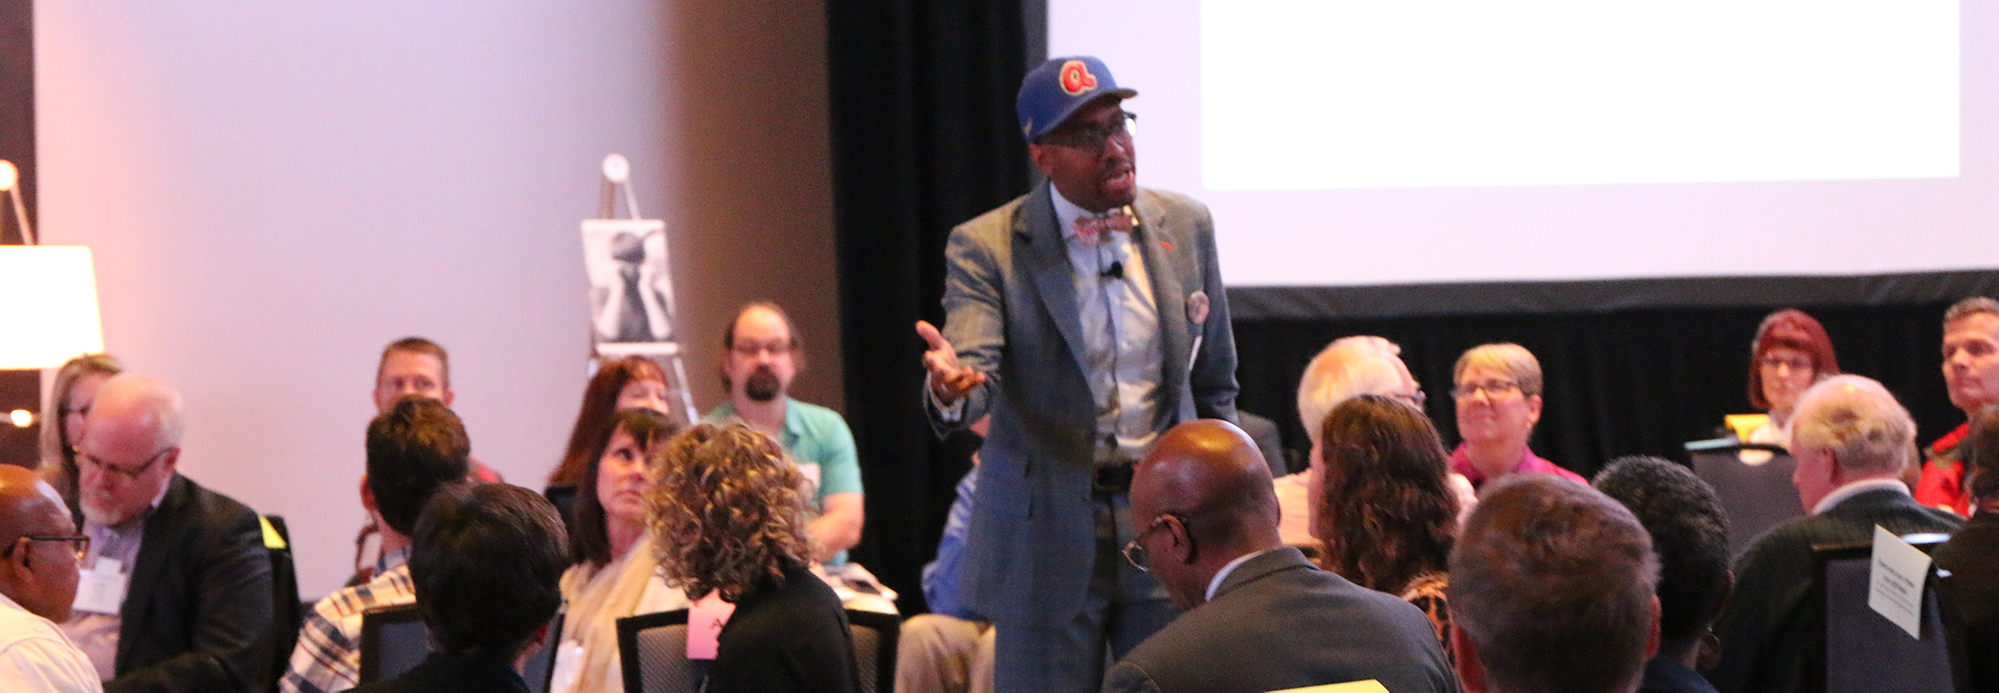 The Rev. Dr. Gregory C. Ellison II, founder of Fearless Dialogues, addressed the Mid Council Leaders Gathering in Chicago. Photo by Rick Jones.